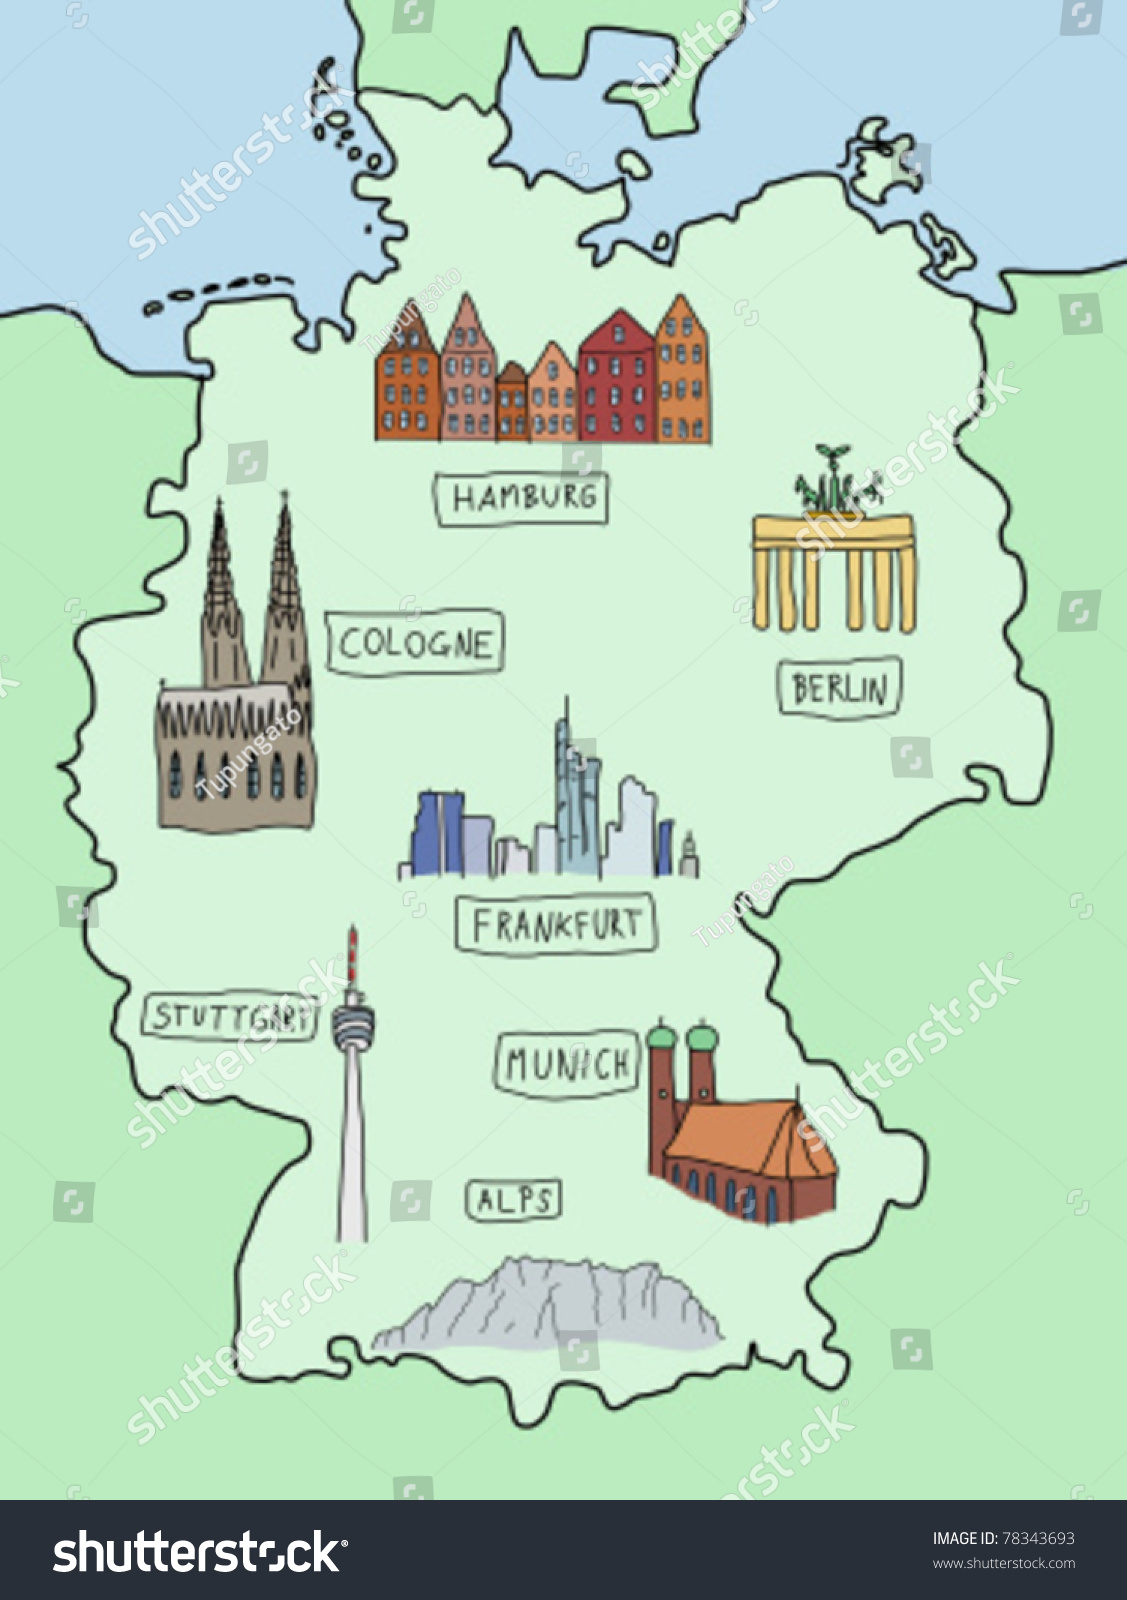 Map Of Germany Frankfurt.Germany Famous Places On Doodle Map Stock Vector Royalty Free 78343693